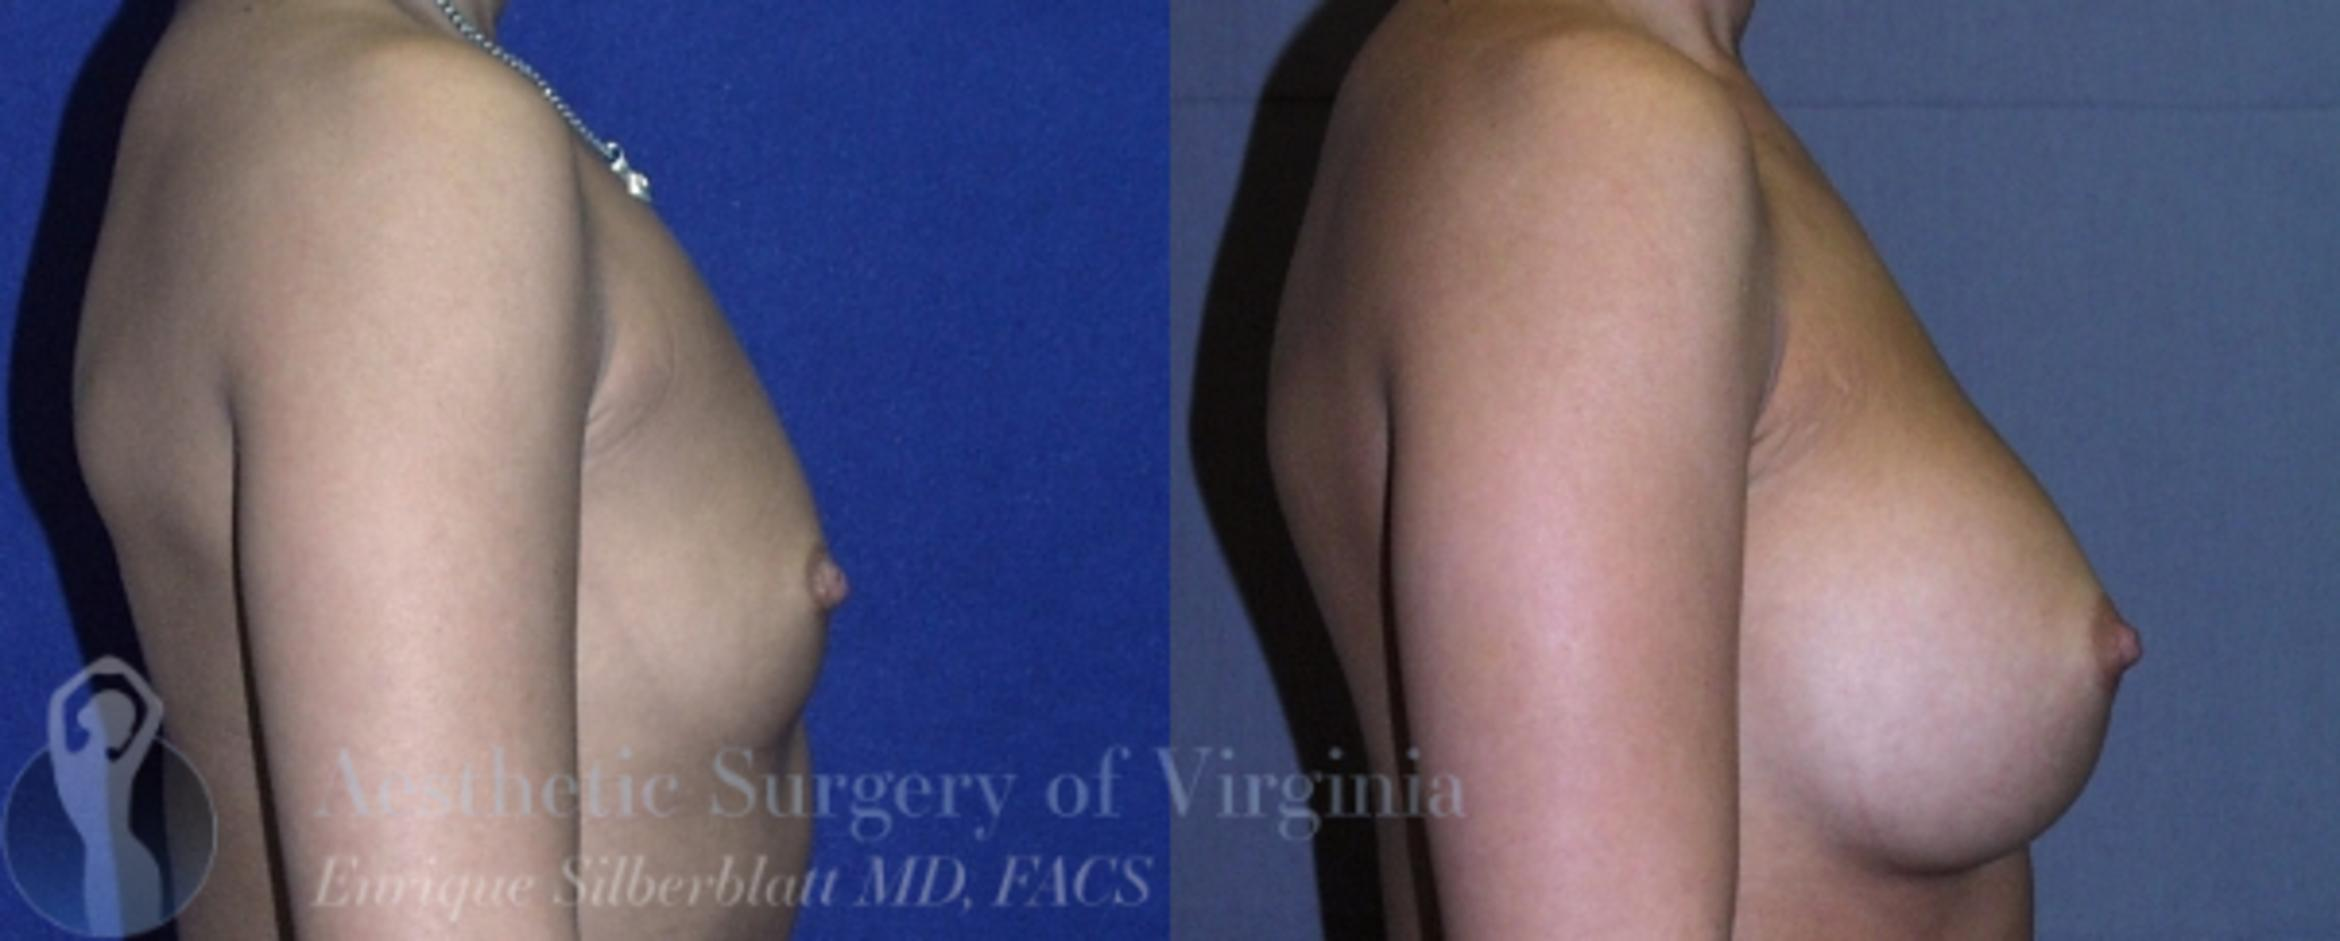 Breast Augmentation Case 11 Before & After View #5 | Roanoke, VA | Aesthetic Surgery of Virginia: Enrique Silberblatt, MD